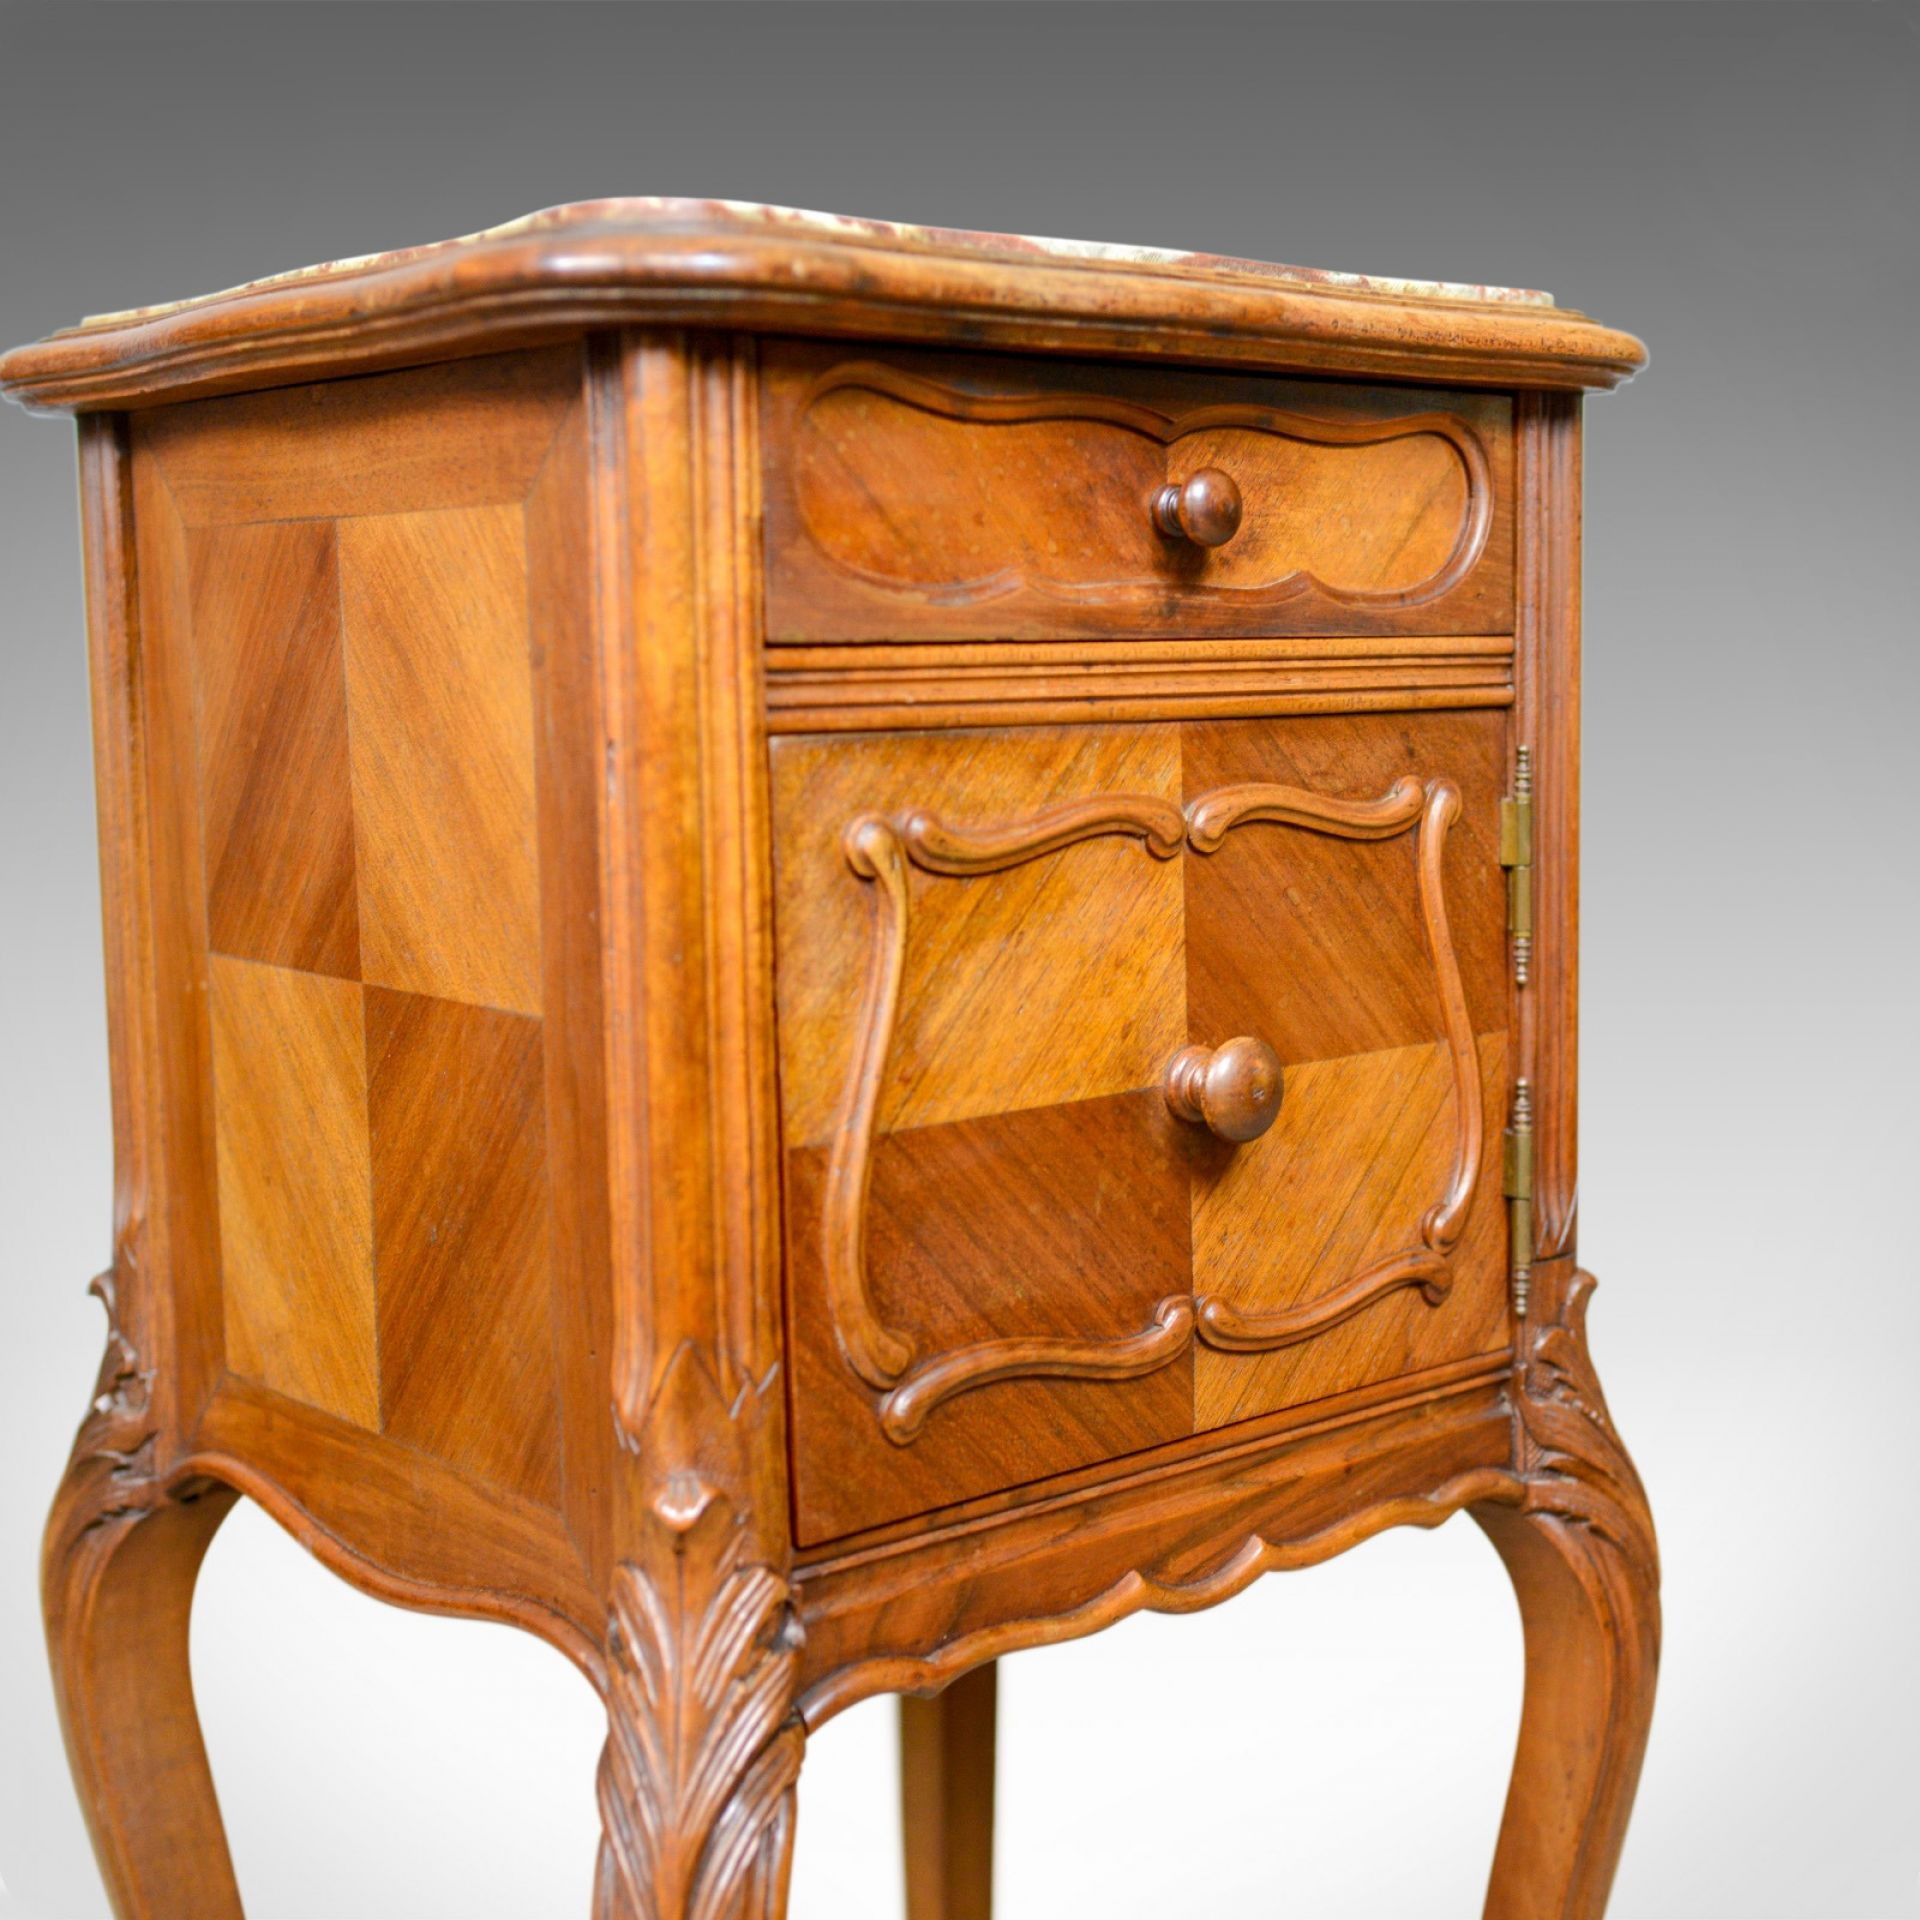 Antique French Bedside Cabinet, Victorian, Walnut, Marble, Pot Cupboard, c.1890